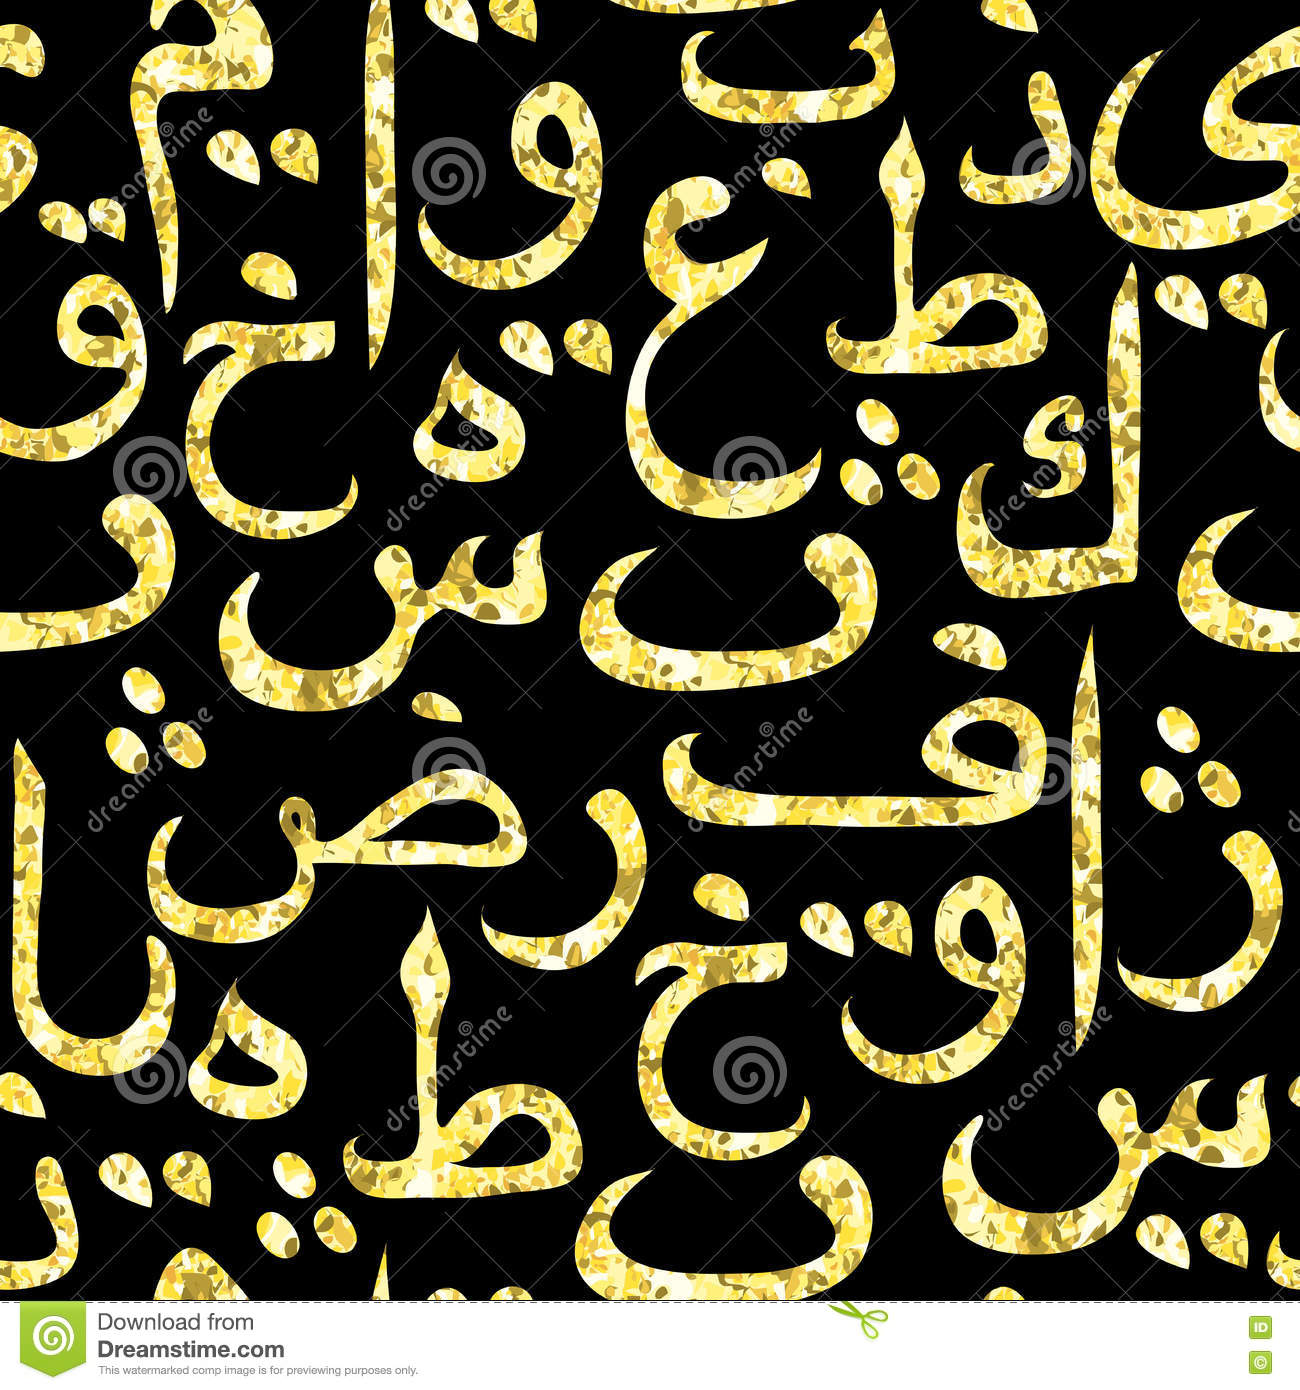 Seamless pattern with arabic calligraphy golden